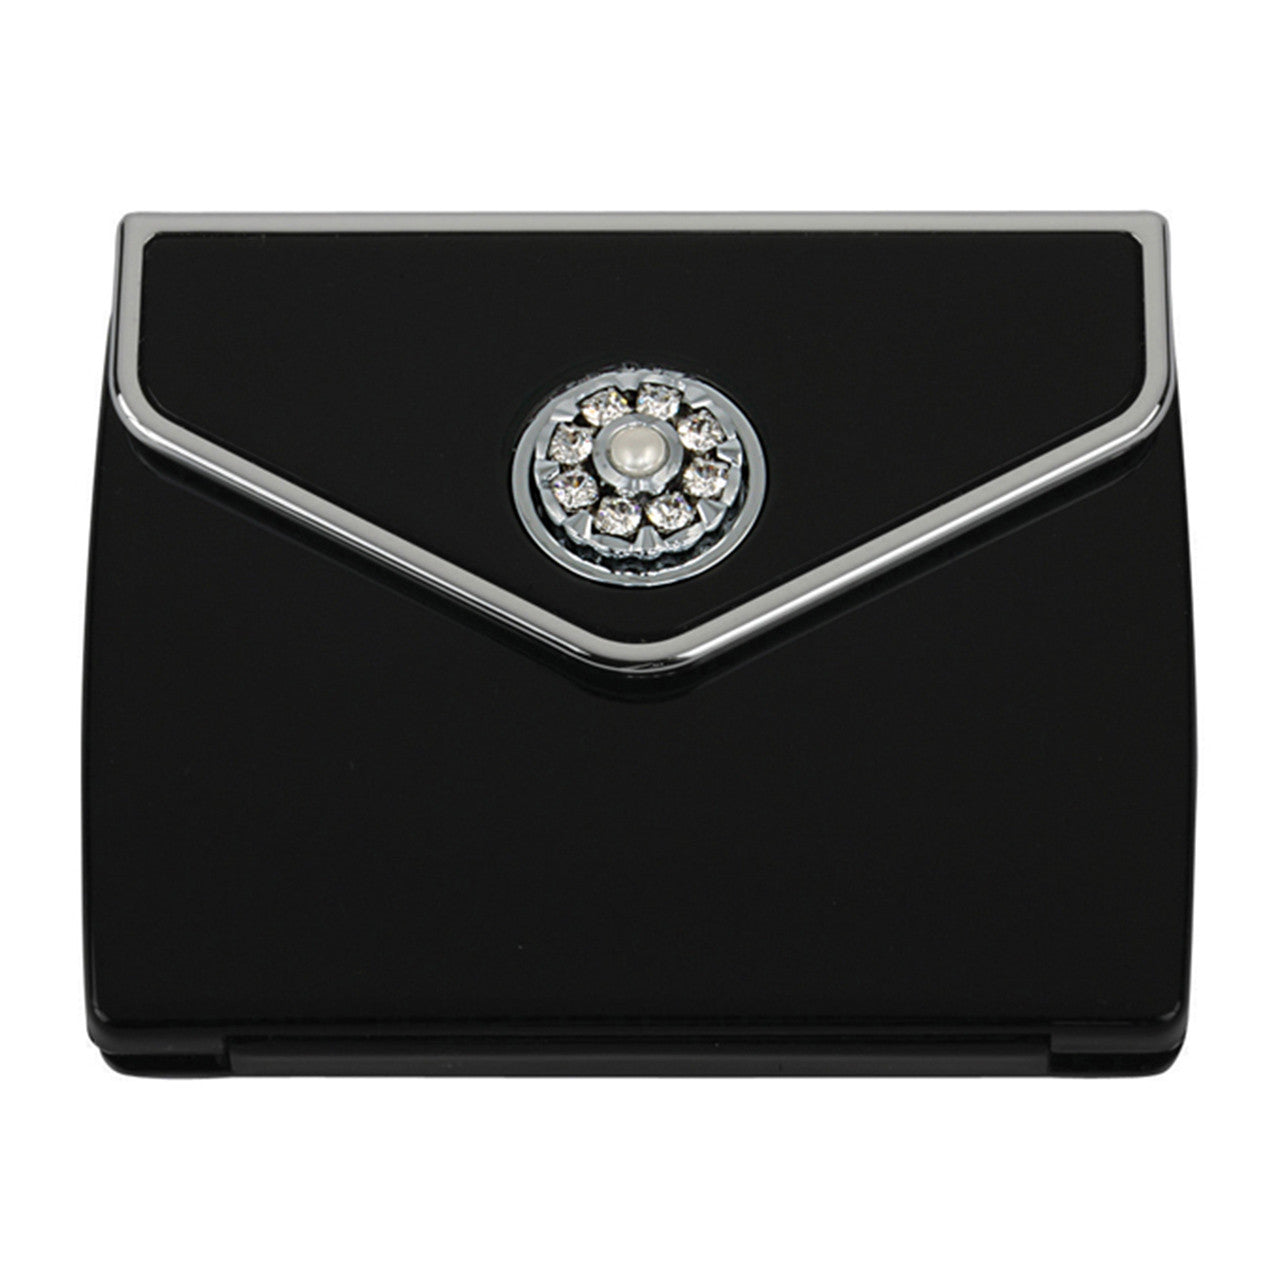 Fancy Metal Goods Pearl & Crystal Compact Envelope - Black